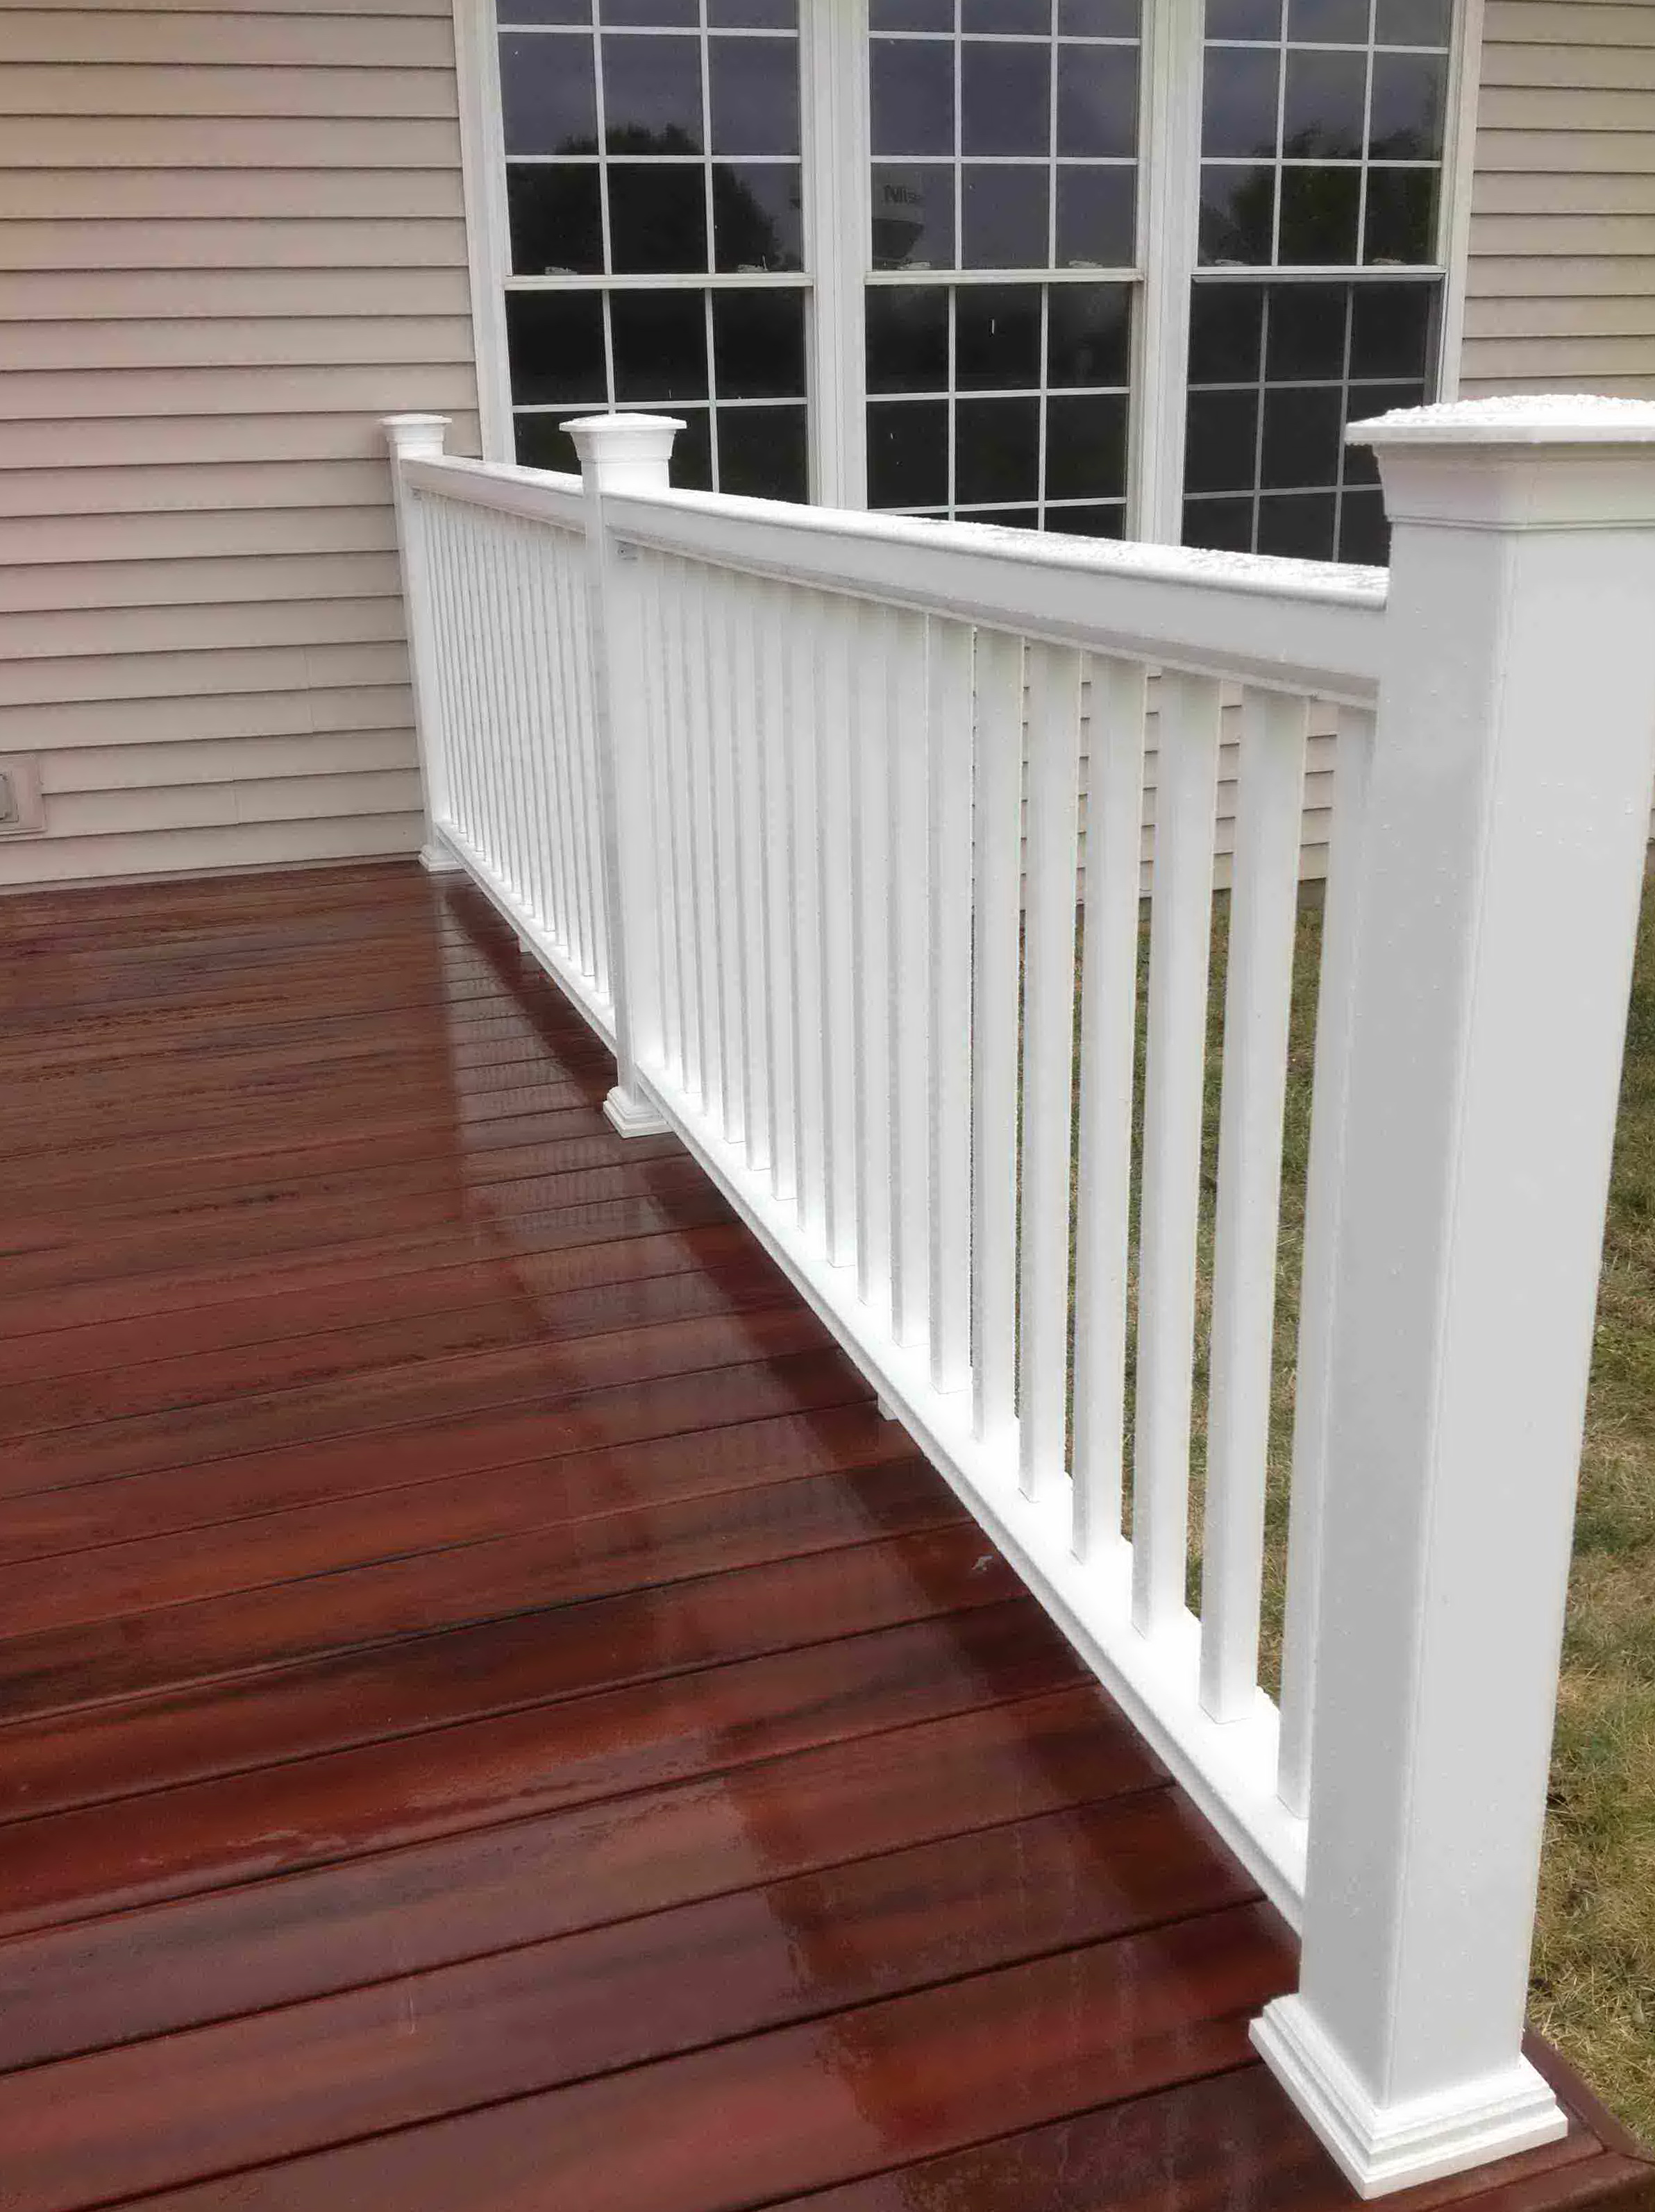 Fiberglass Decking Material : Composite decking material home design ideas